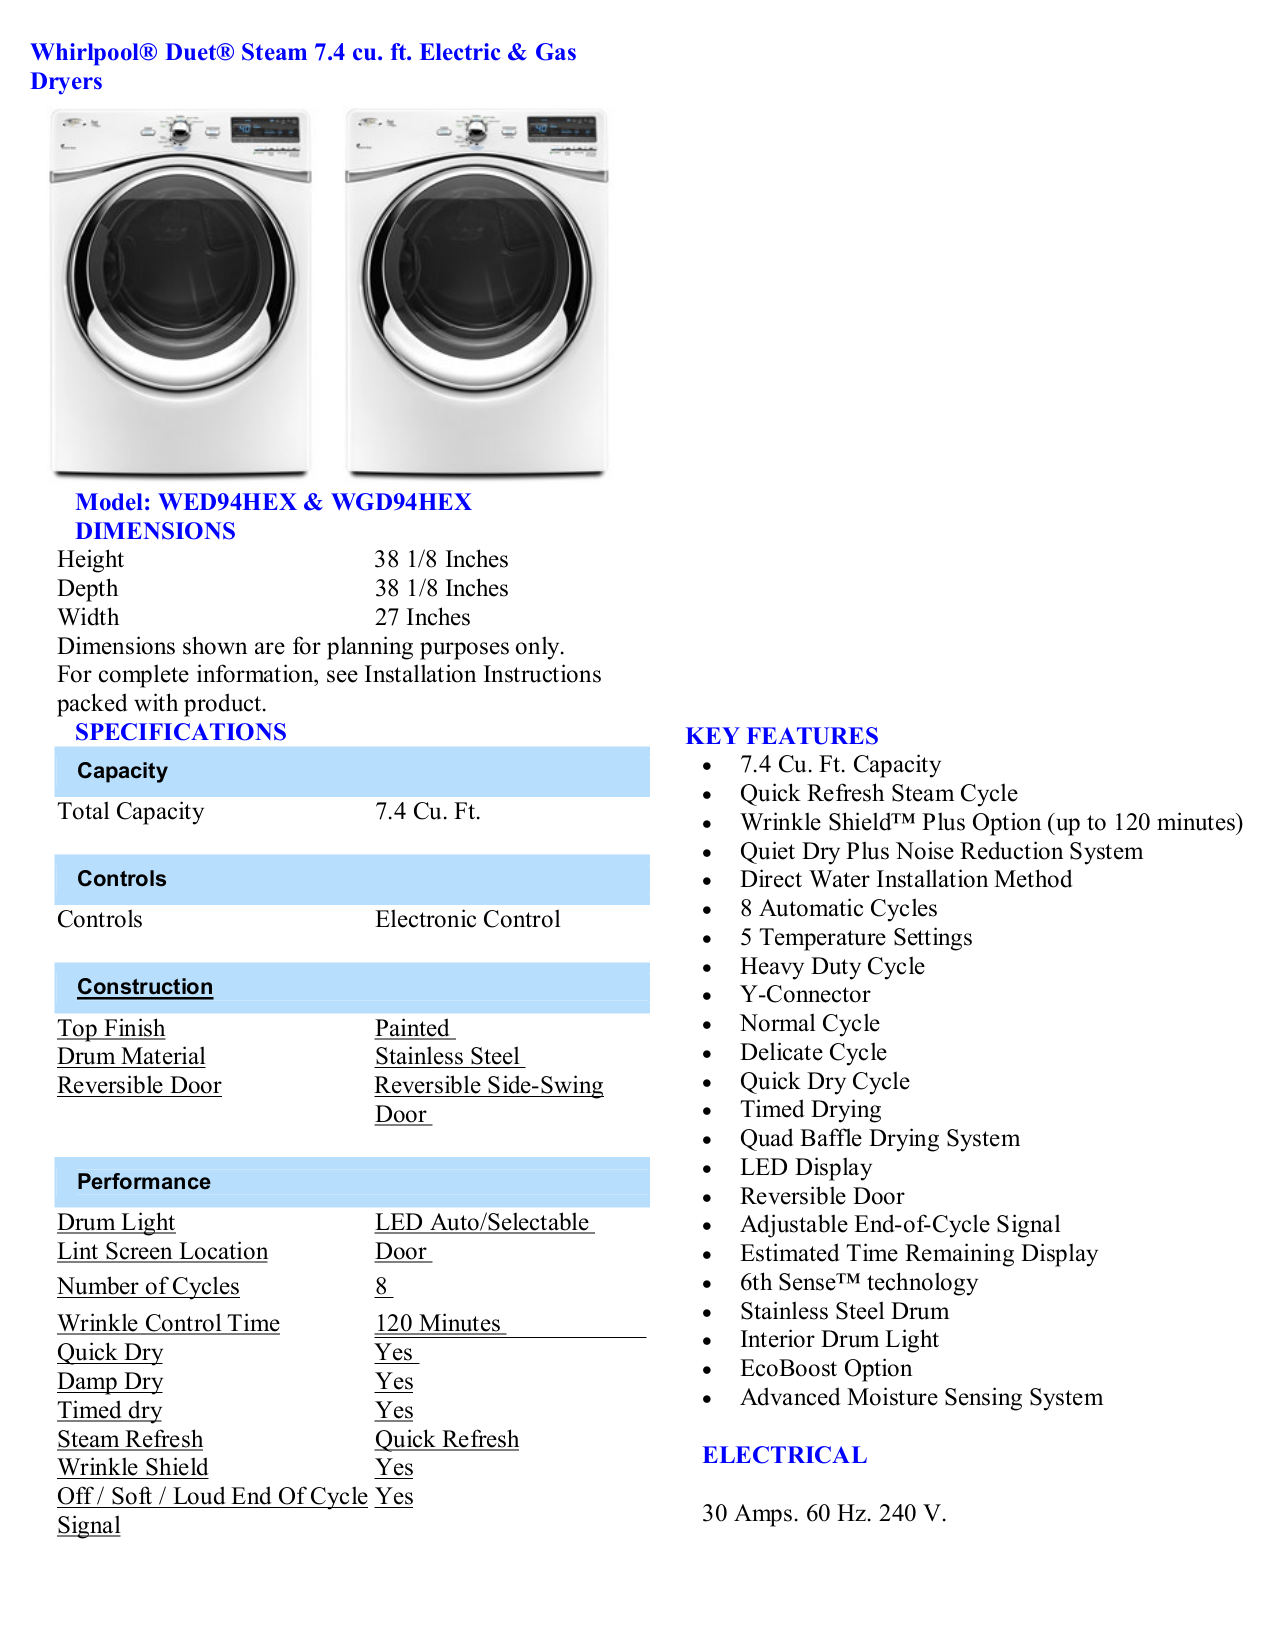 Pdf-9424] whirlpool duet sport washer user manual | 2019 ebook library.